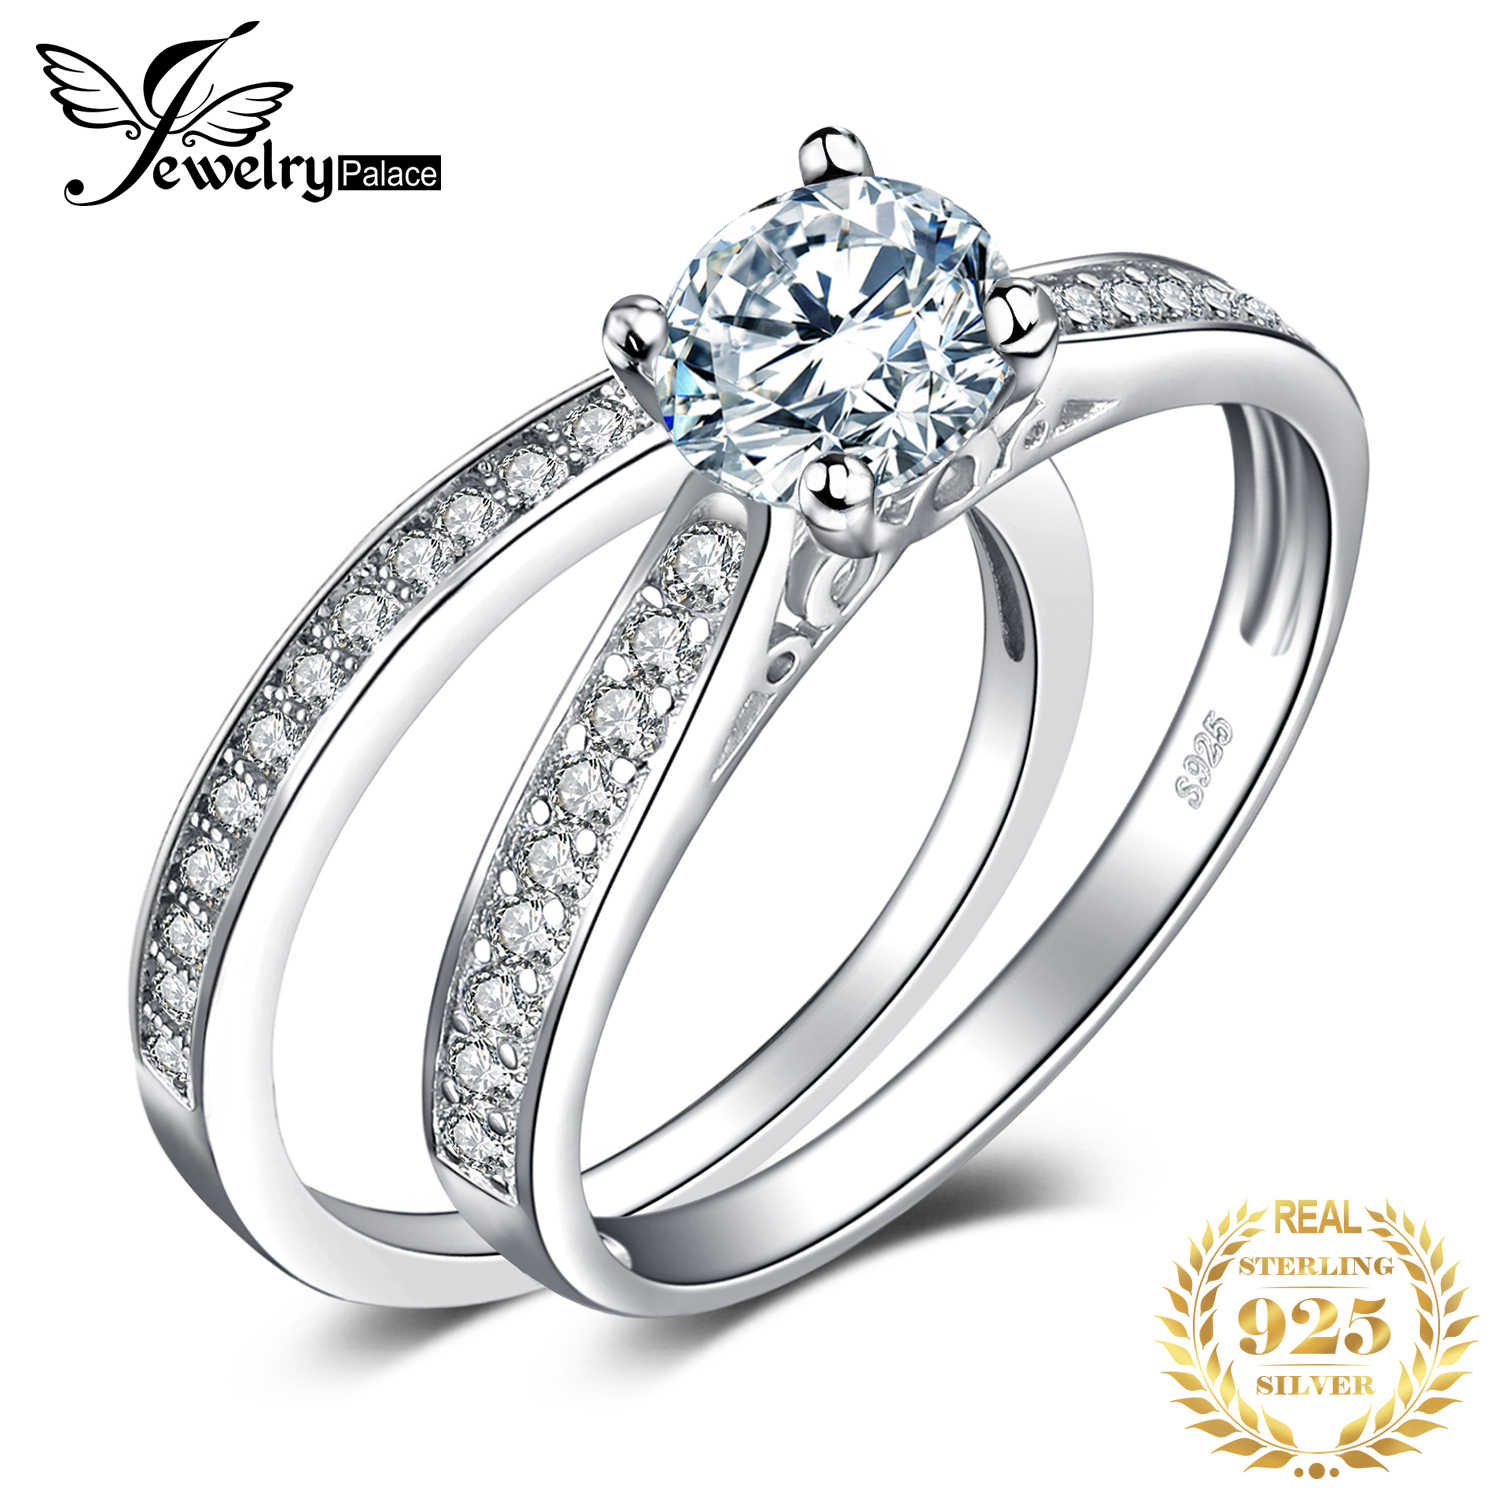 JewelryPalace 1.3ct Cubic Zirconia Engagement Rings Wedding Bands 925 Sterling Silver Bridal Sets Anniversary Gifts for Women